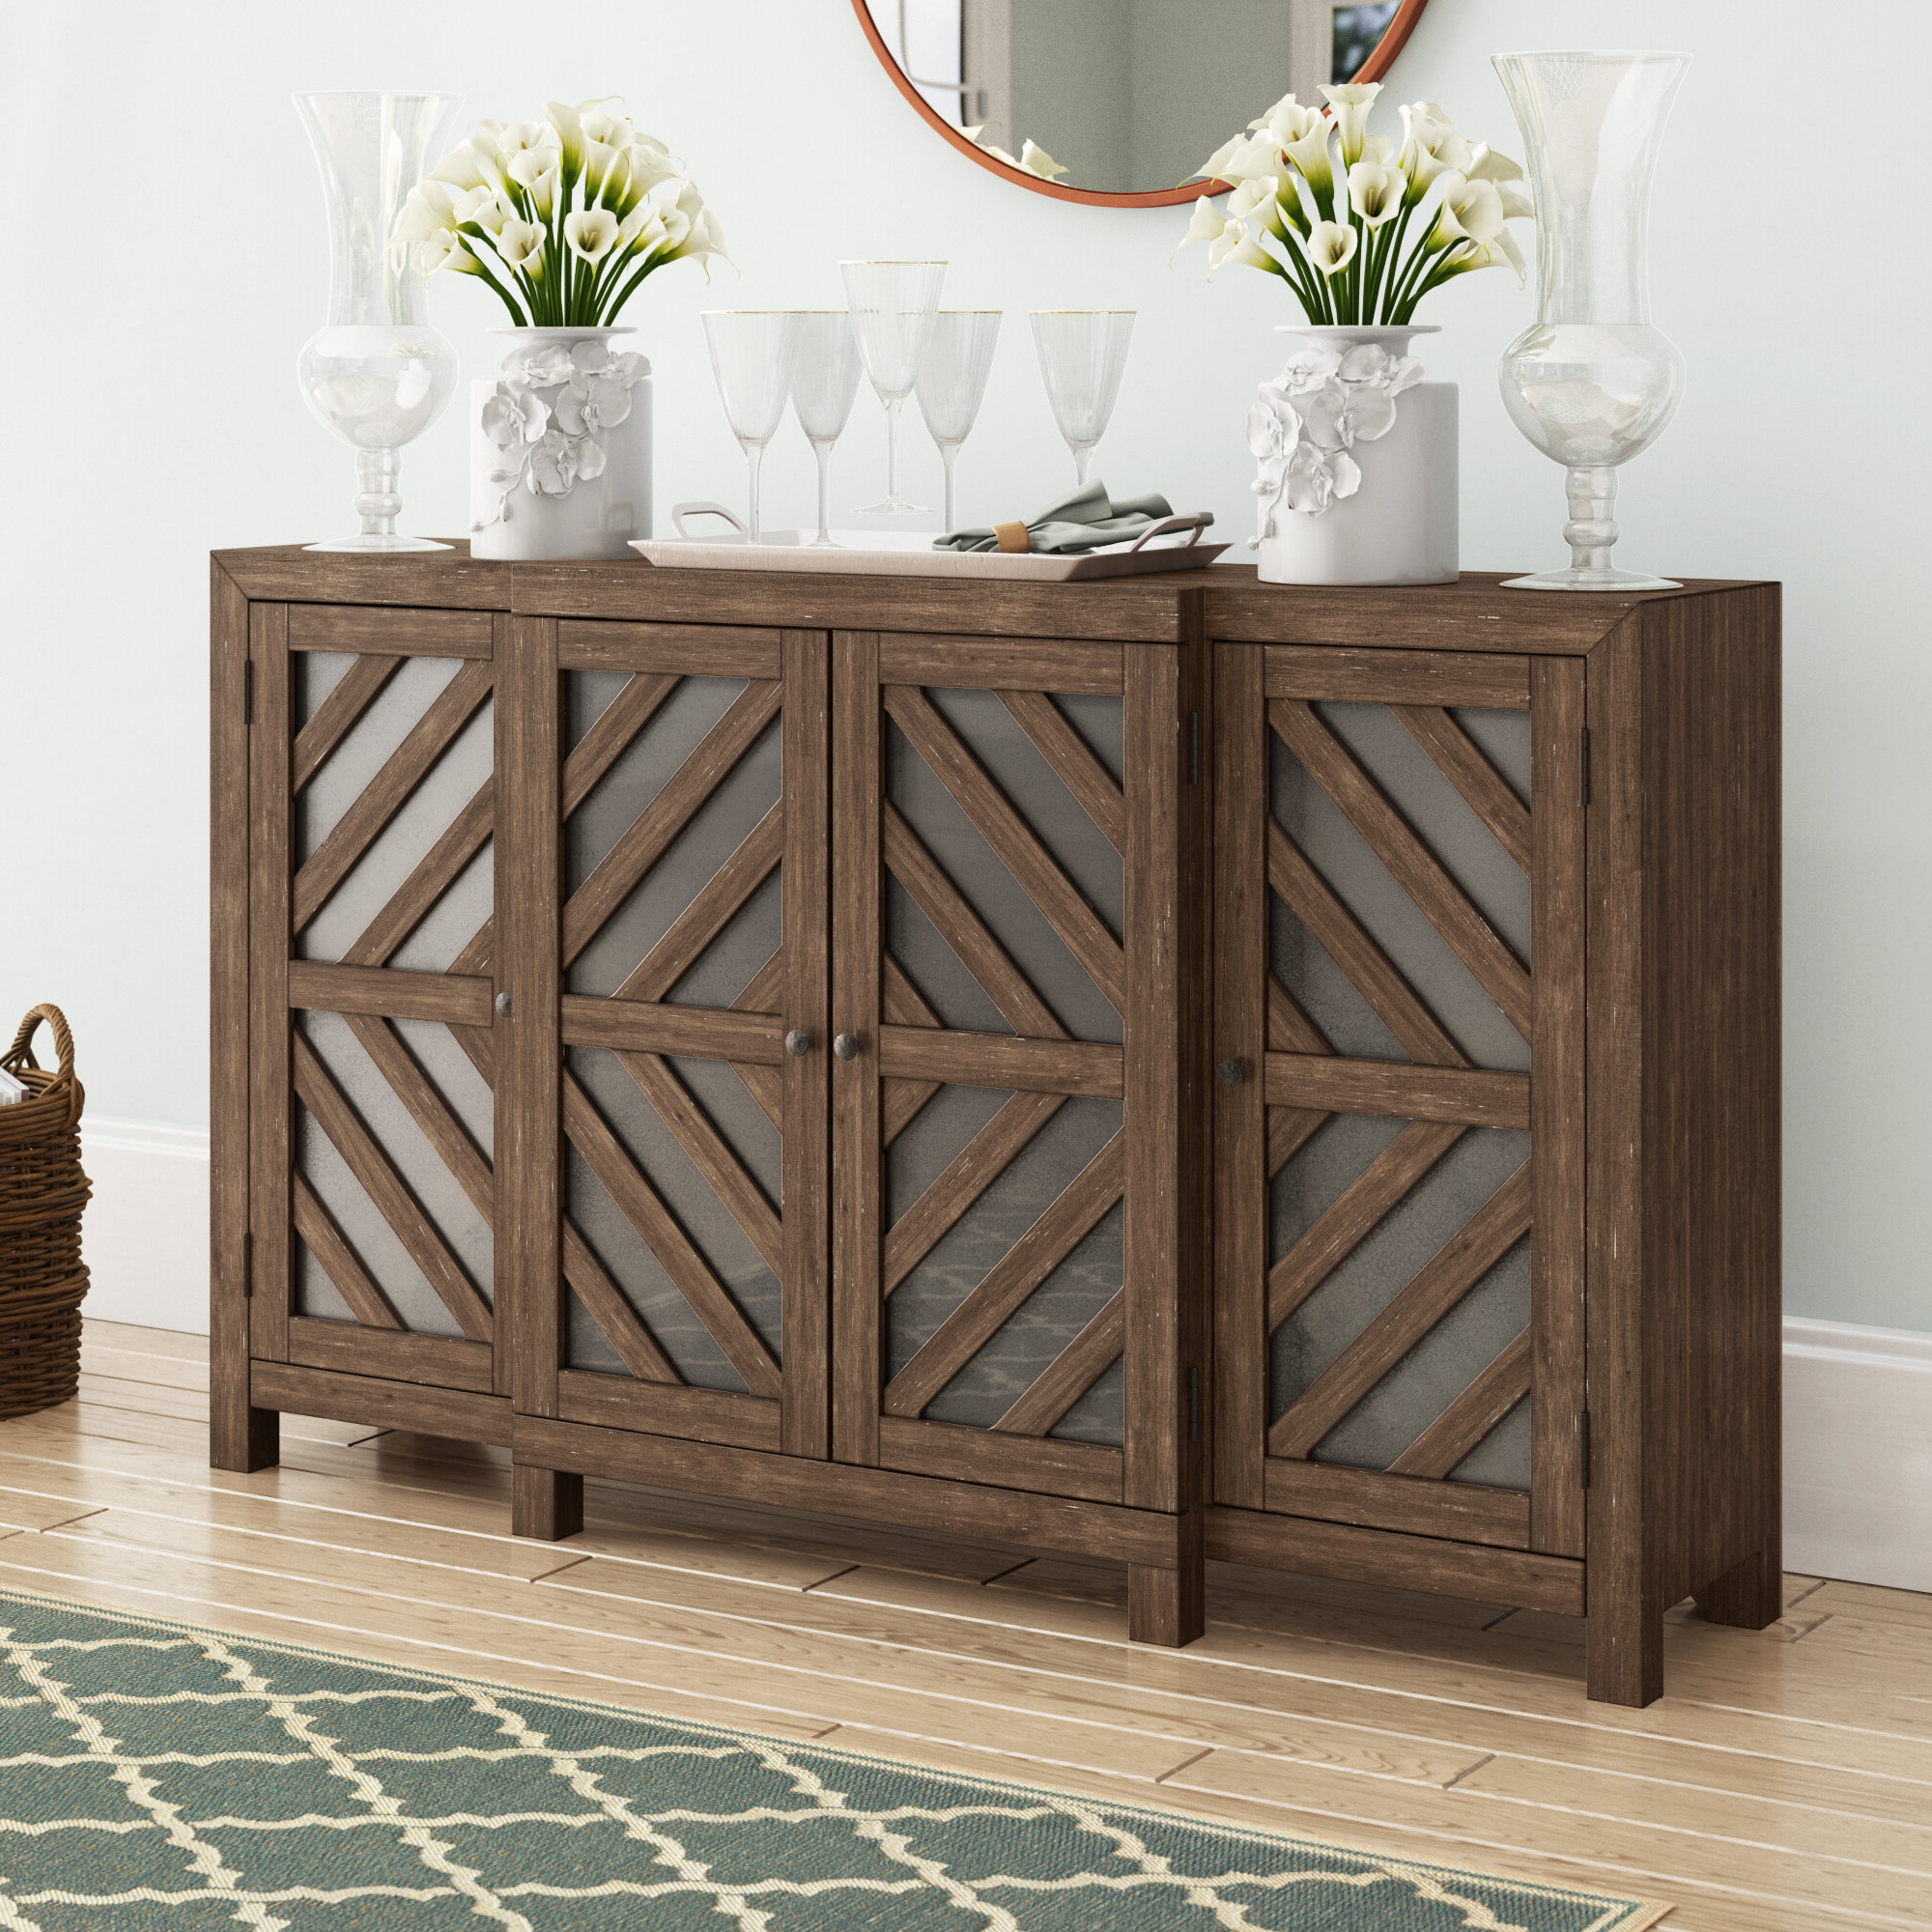 Fashionable 70 Inch Credenza You'll Love In (View 5 of 20)